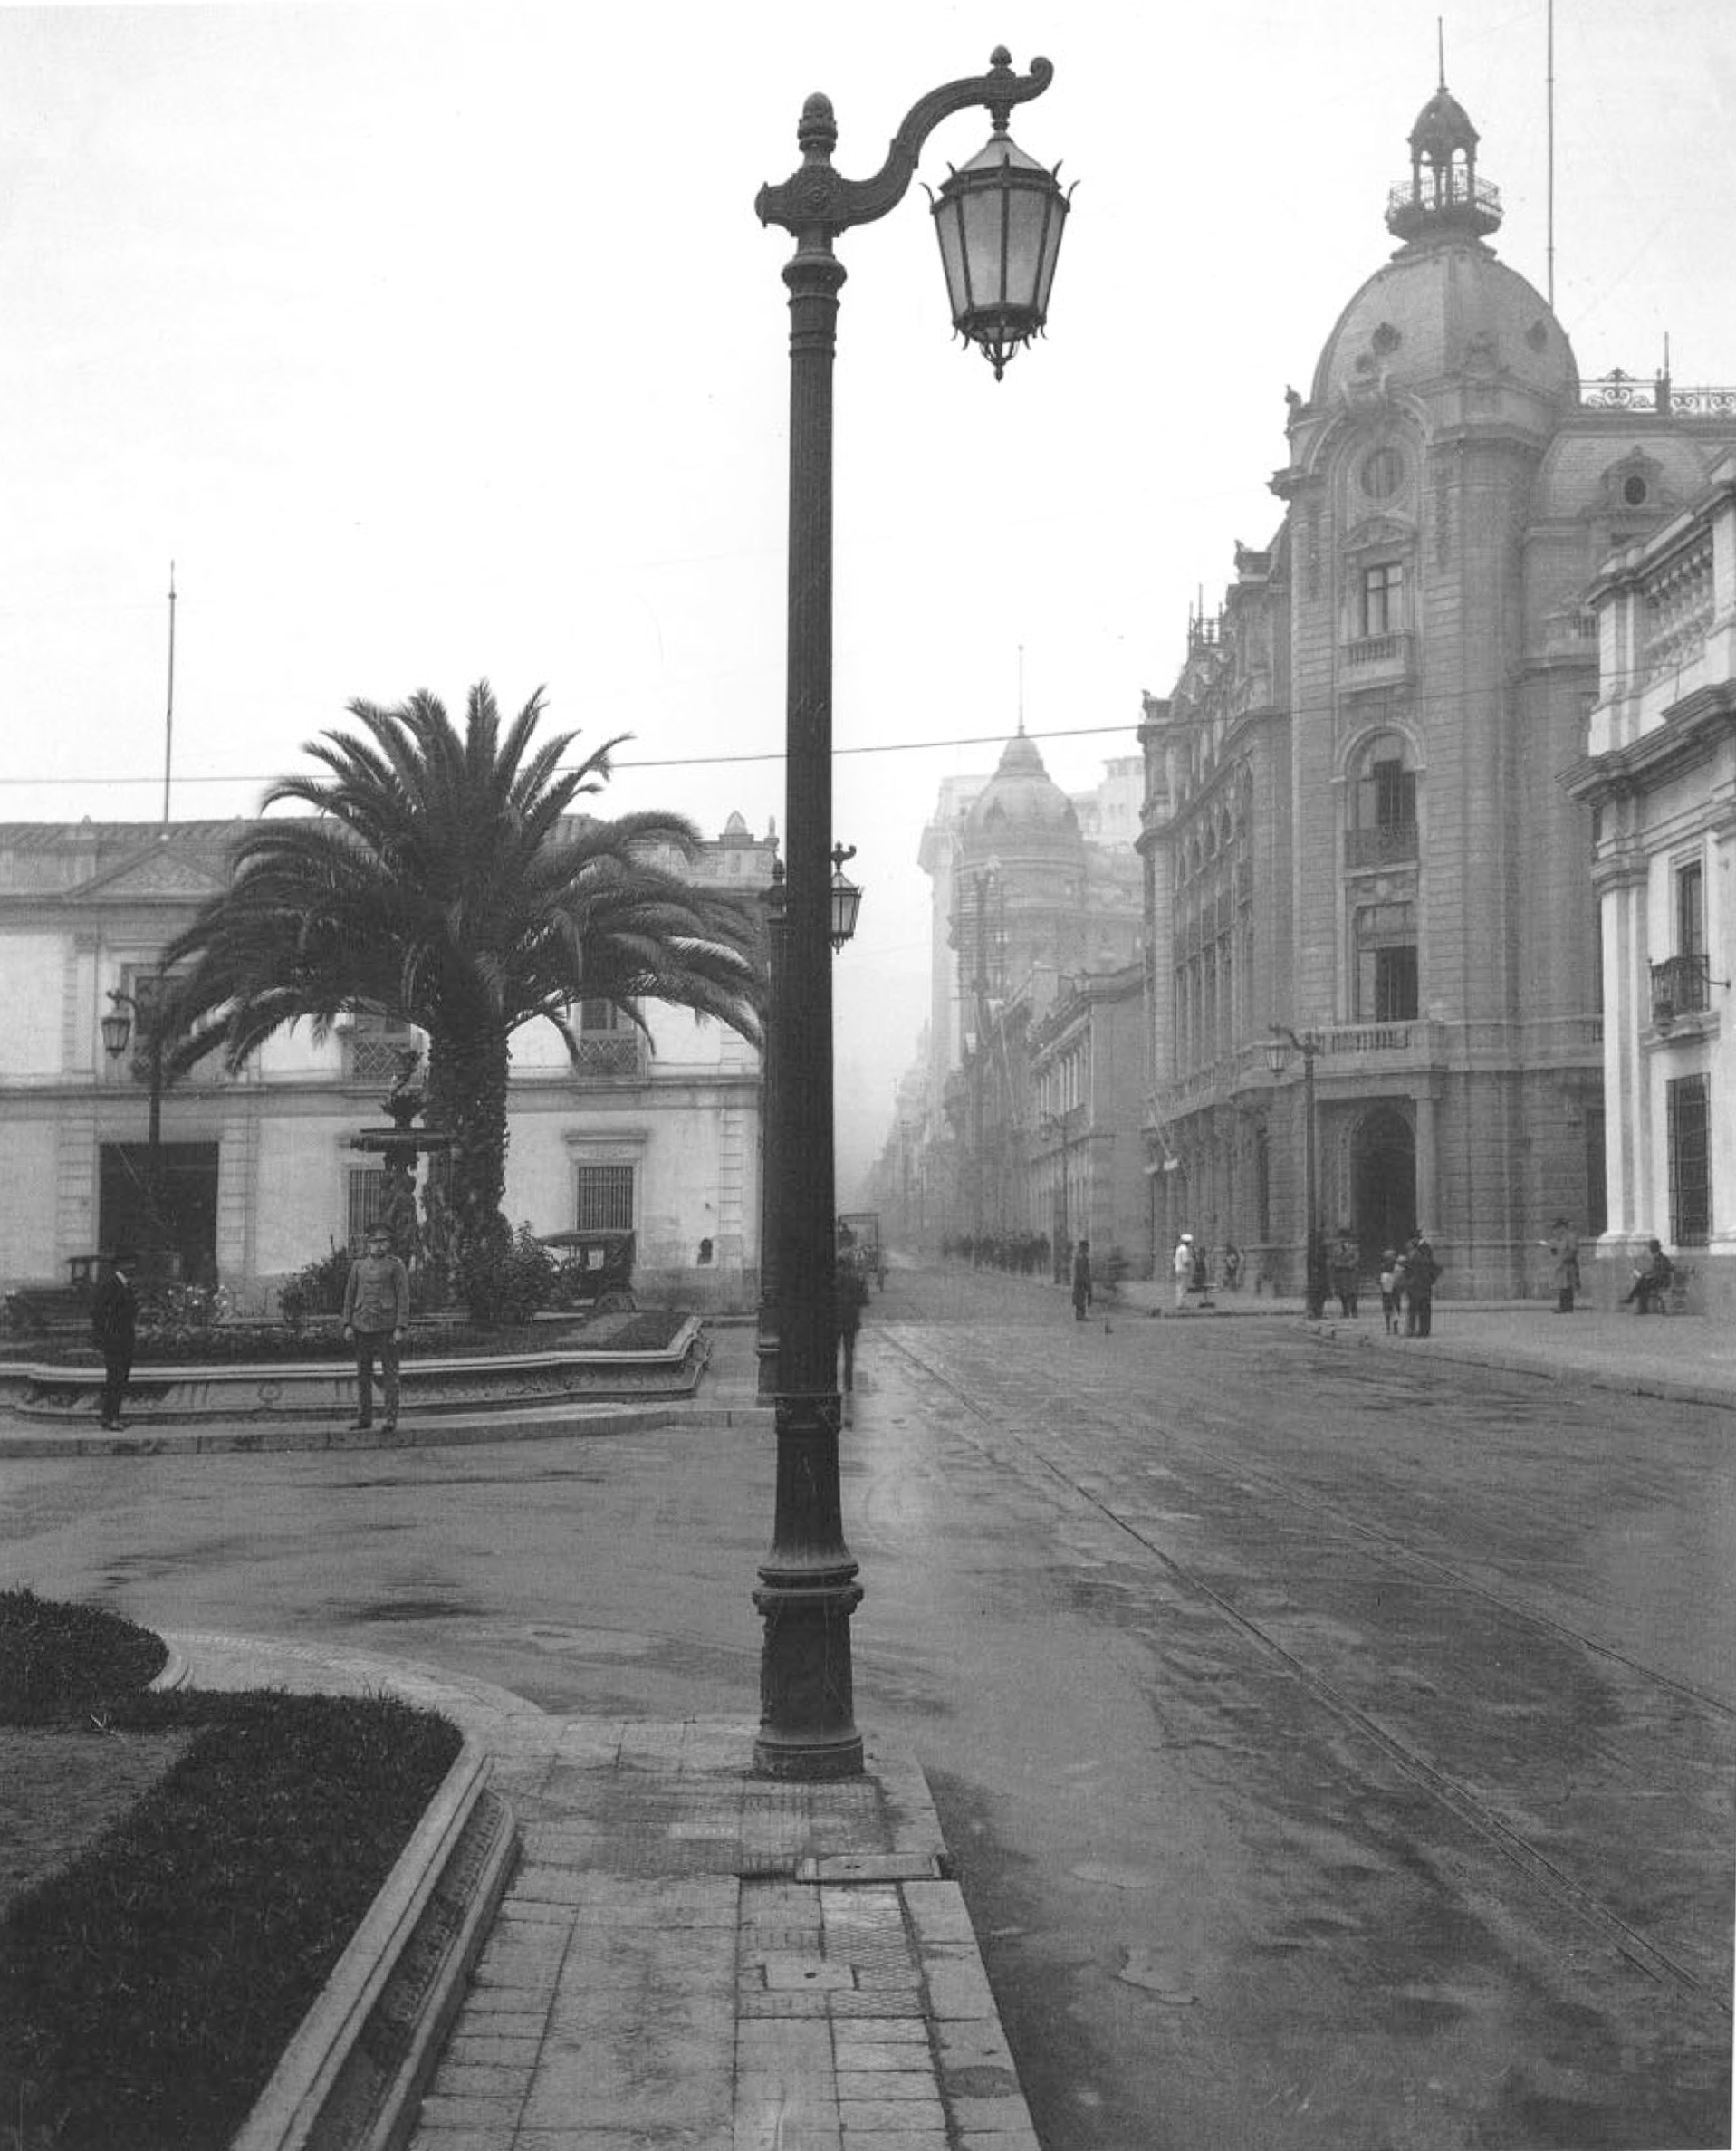 Enterreno - Fotos históricas de chile - fotos antiguas de Chile - Diario Ilustrado y Palacio de La Moneda, 1927